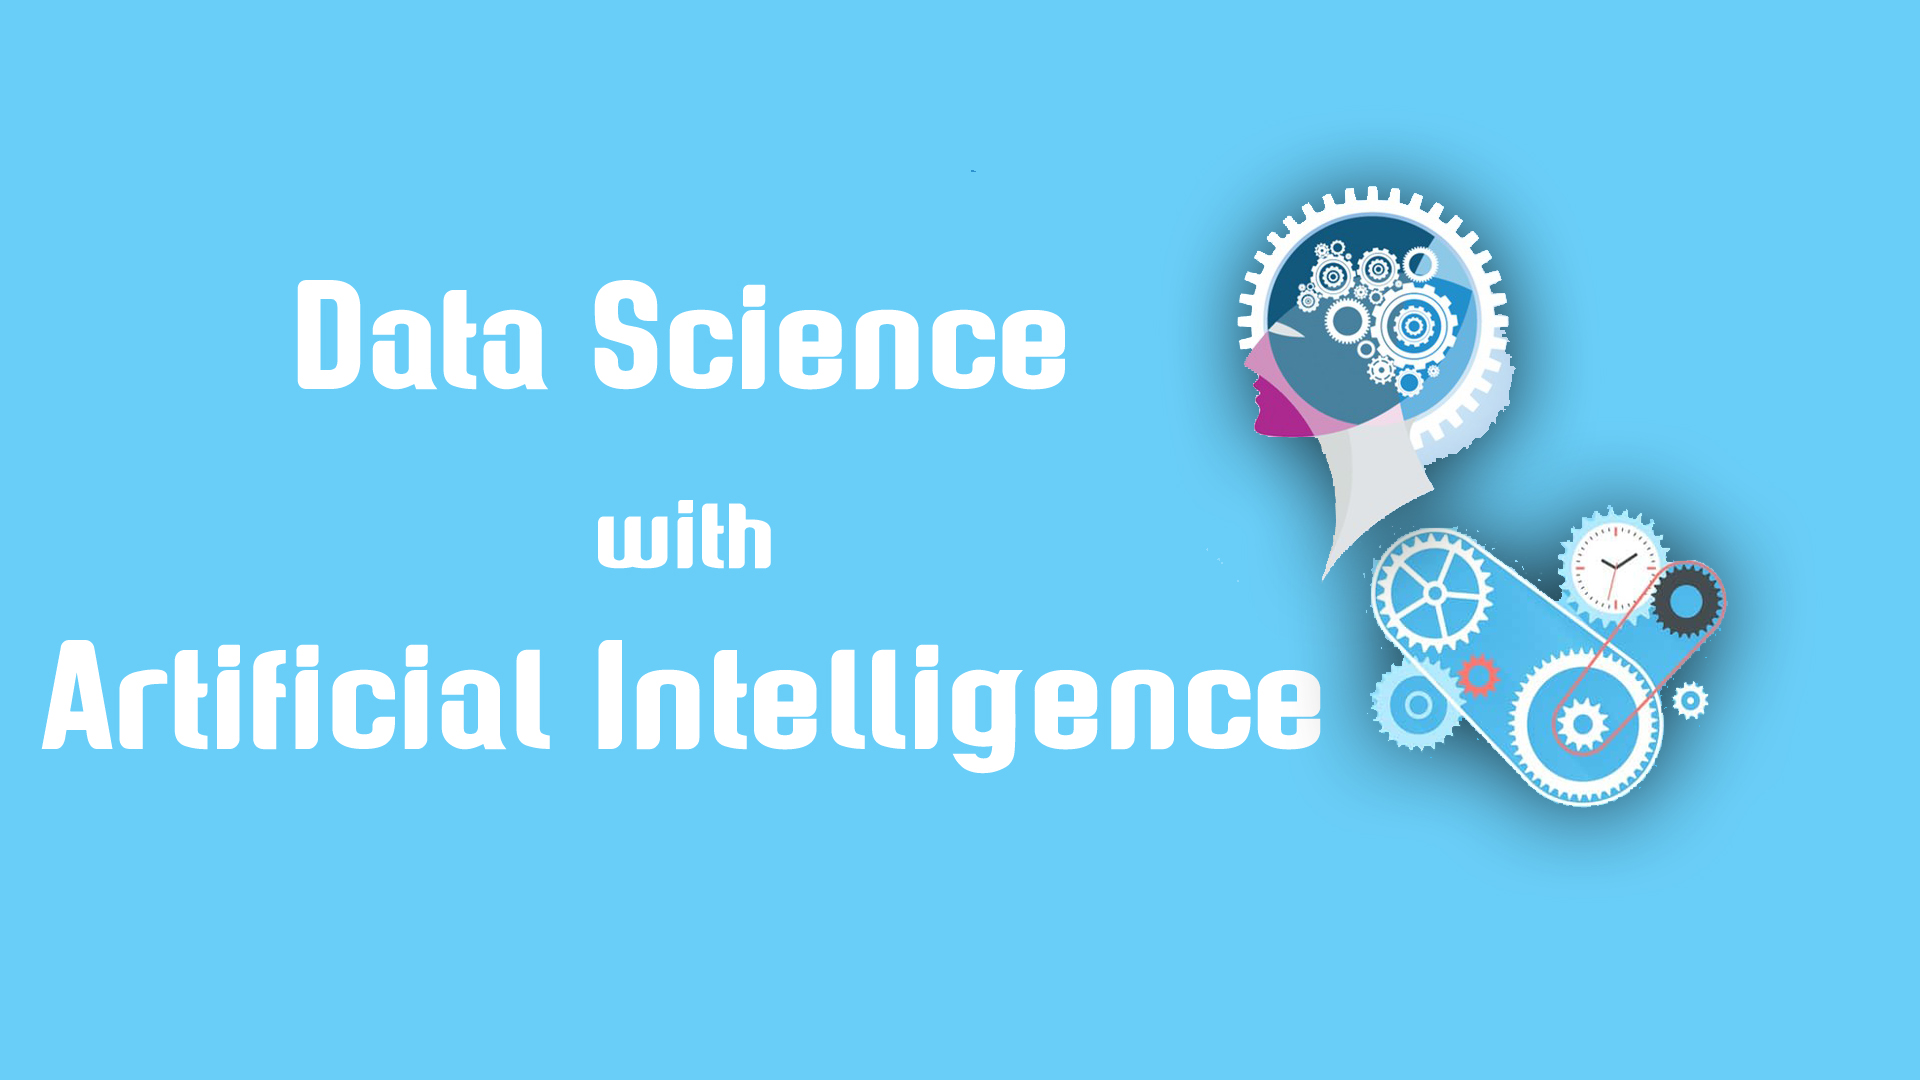 Data Science with Artificial Intelligence